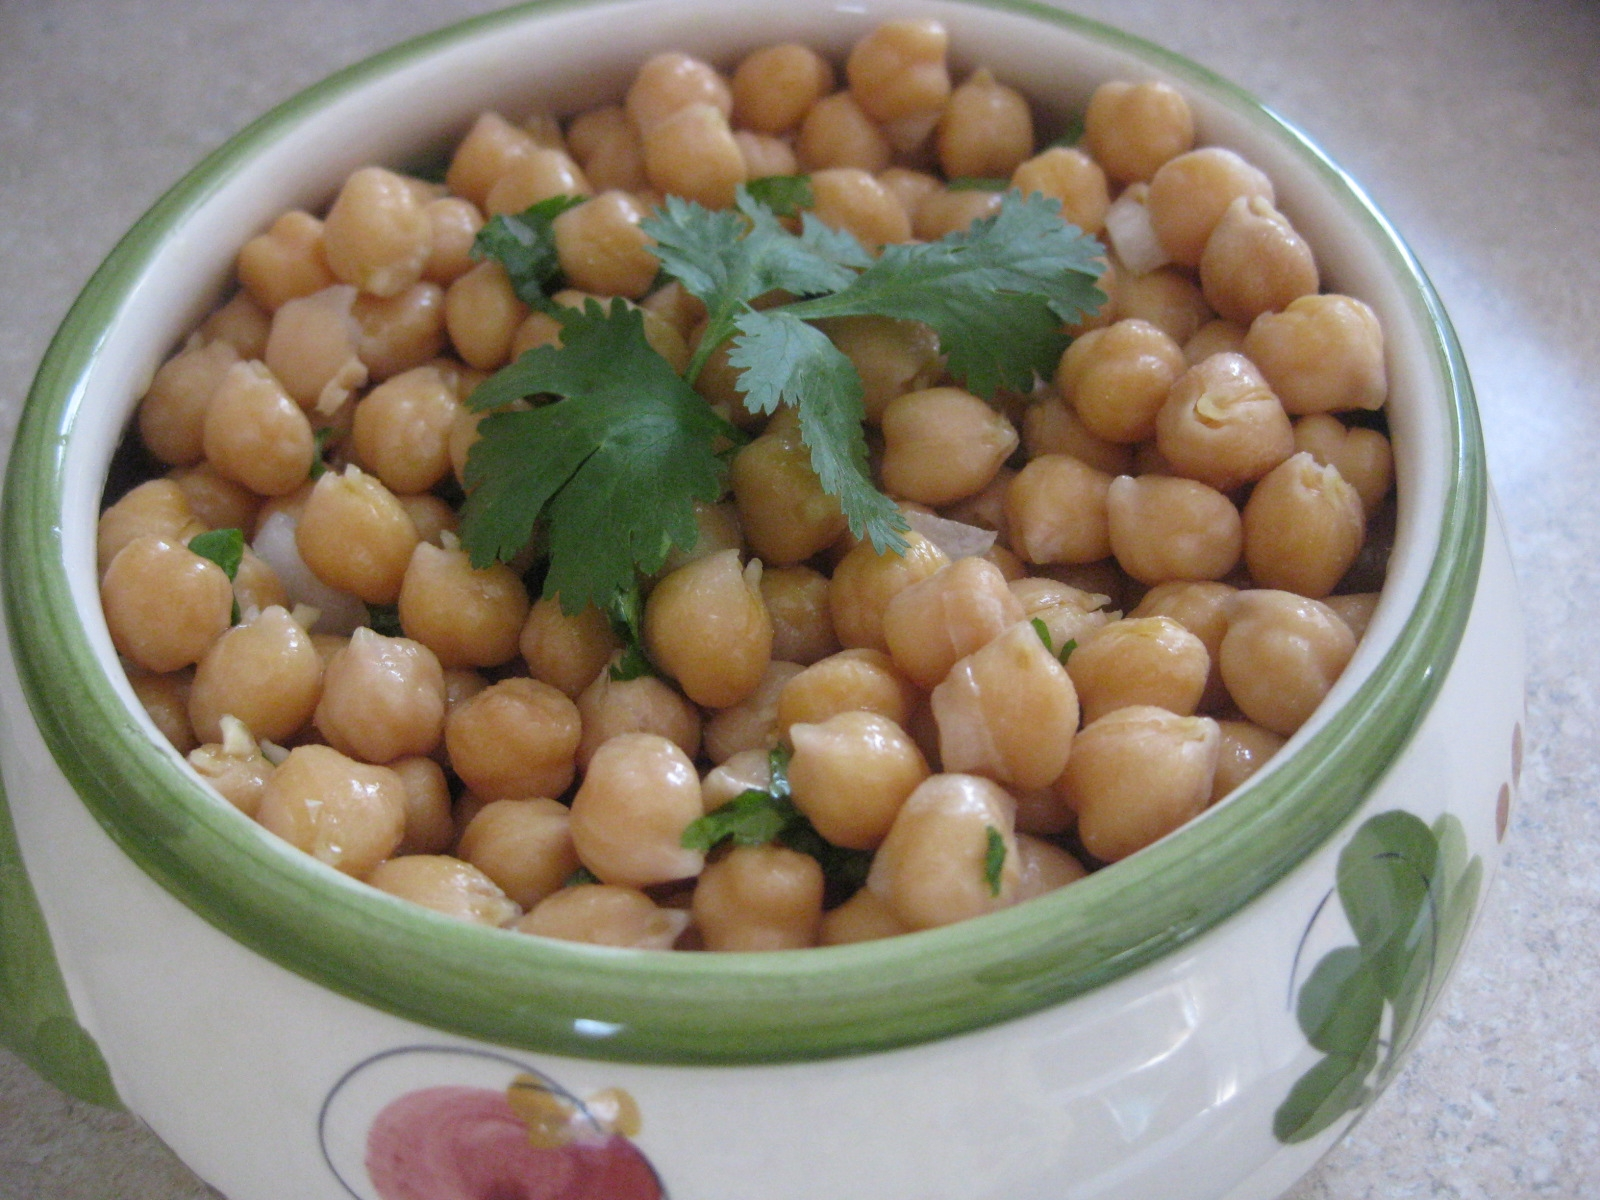 Garbanzo beans salad